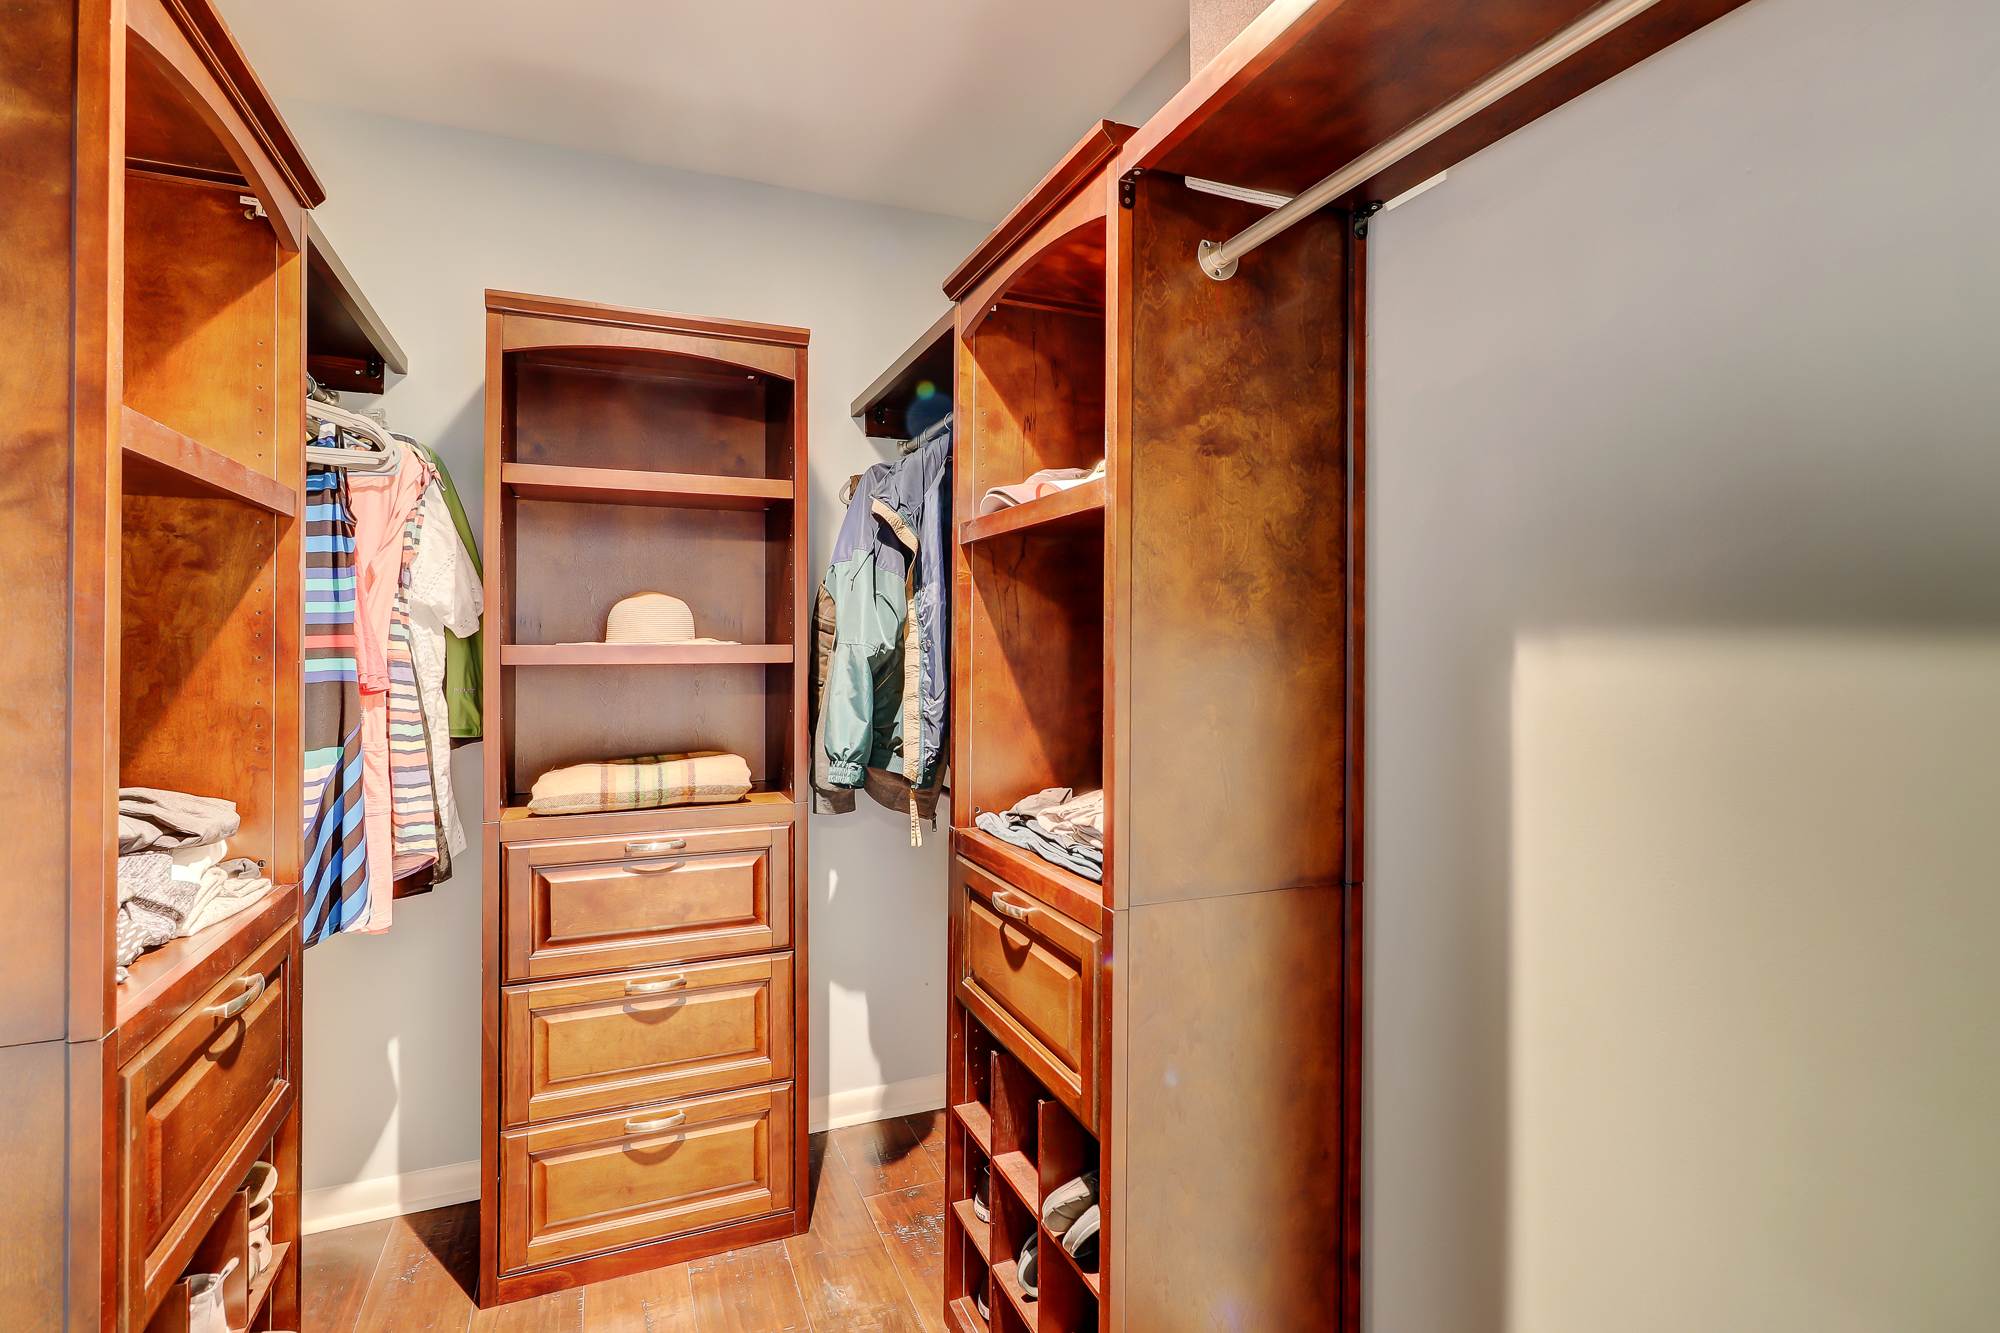 Master walk in closet with wood shelving, drawer bases, shoe racks and hardwoods. 8 Bradley Beach, Hilton Head Island, MLS# 388240